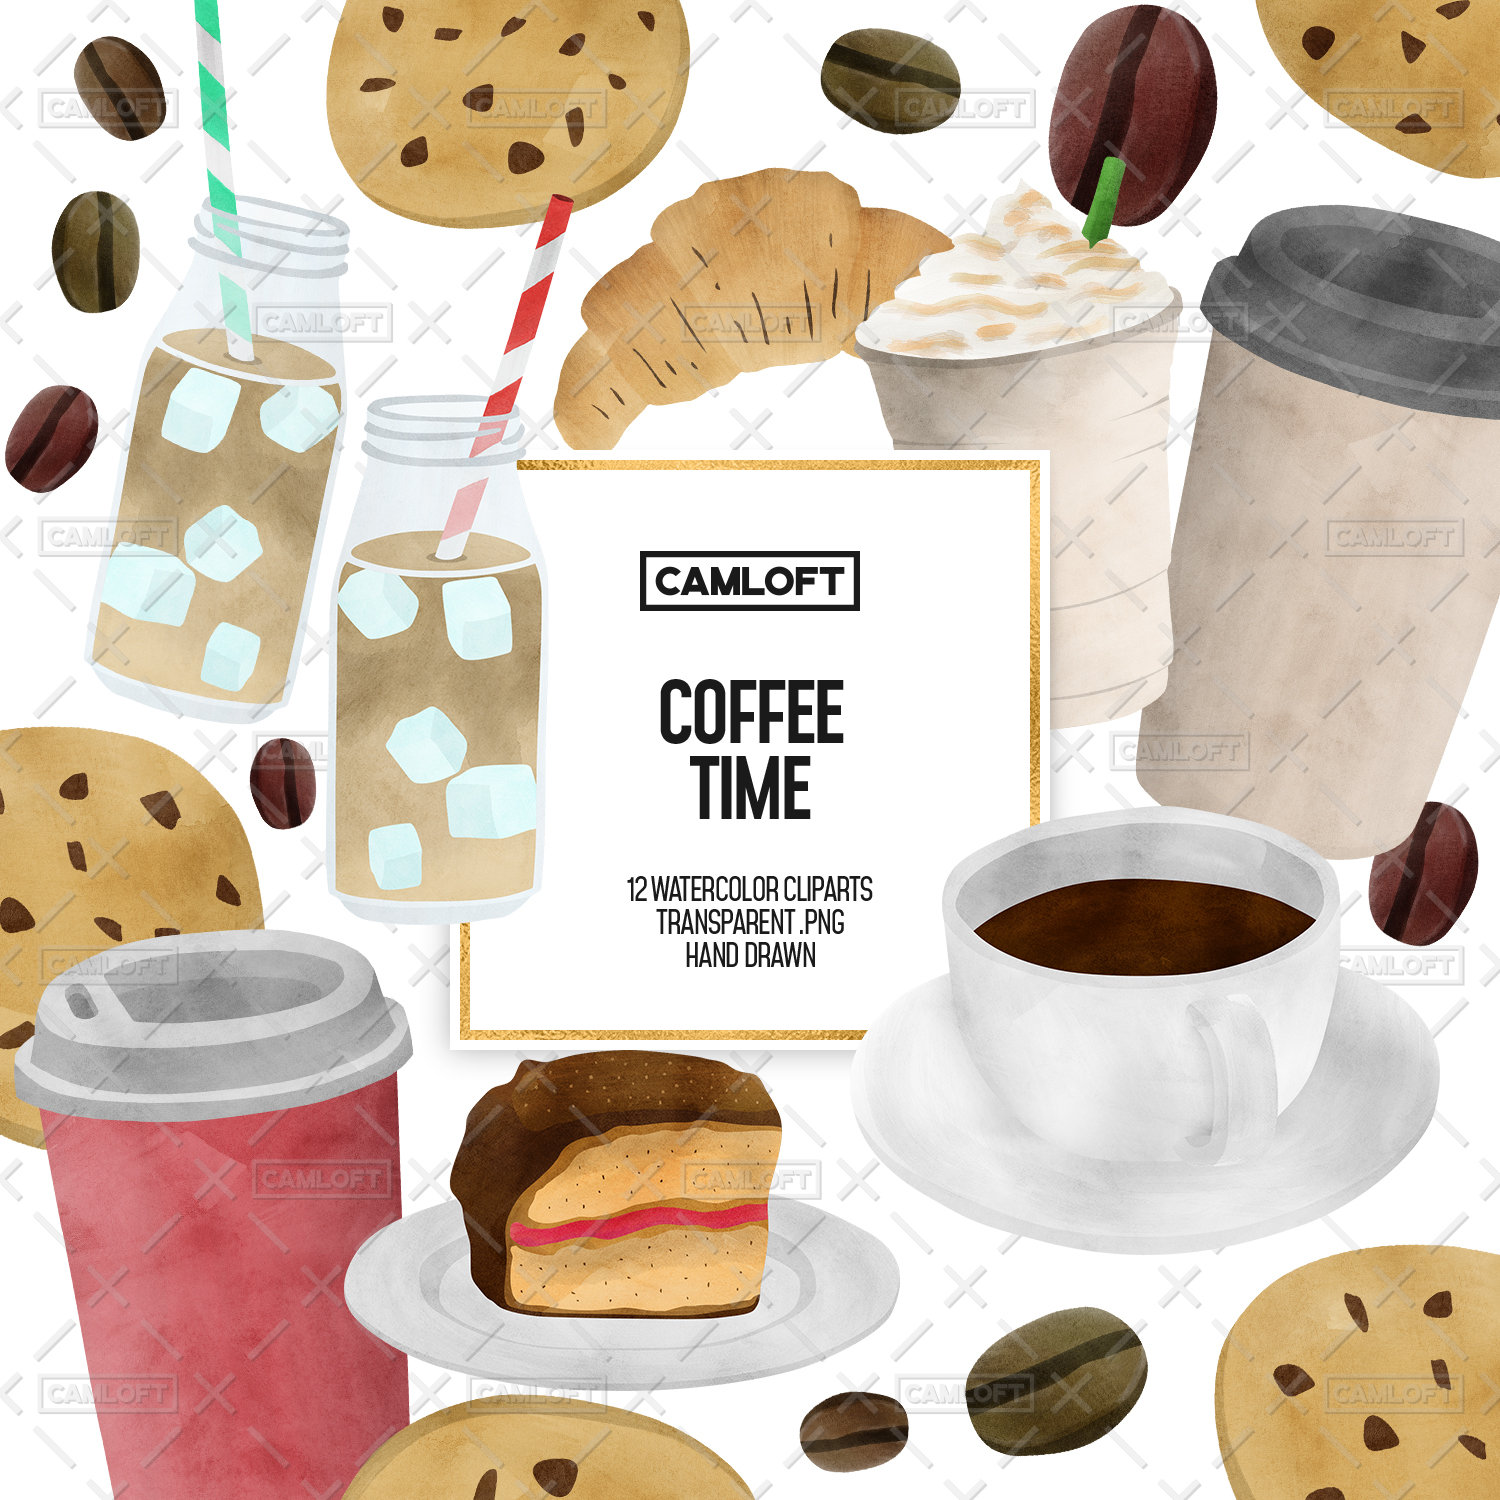 Coffee Watercolor Cliparts, Coffee Clipart, Planner Clip Art, Coffee  Planner, Coffee Stickers, Pastry Clipart, Elegant Planner.